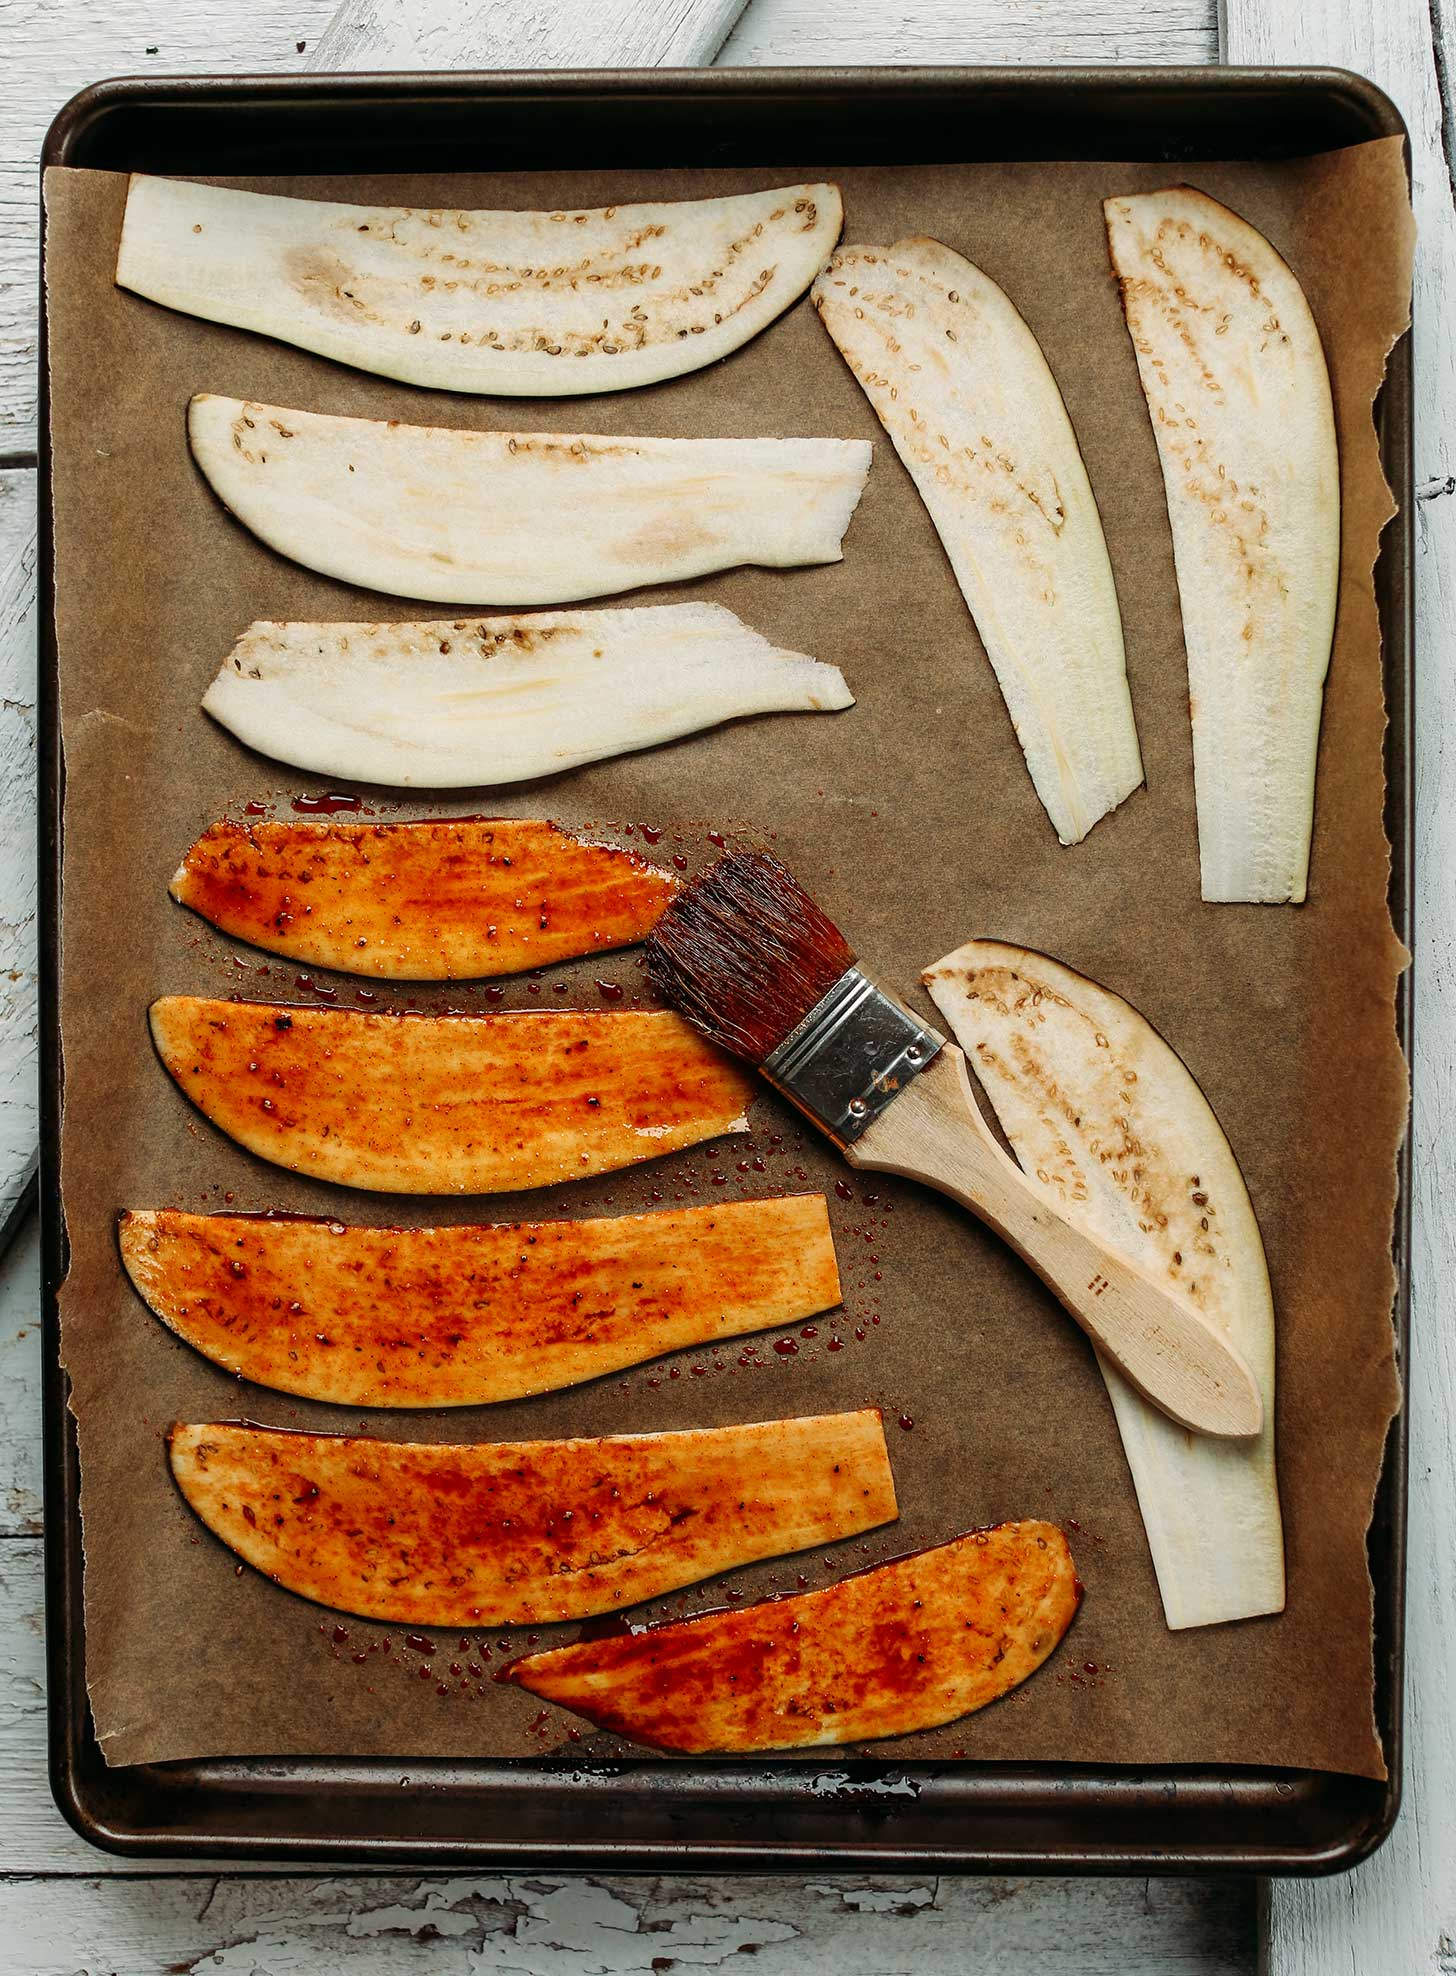 Brushing sauce onto sliced eggplant laying on a parchment-lined baking sheet